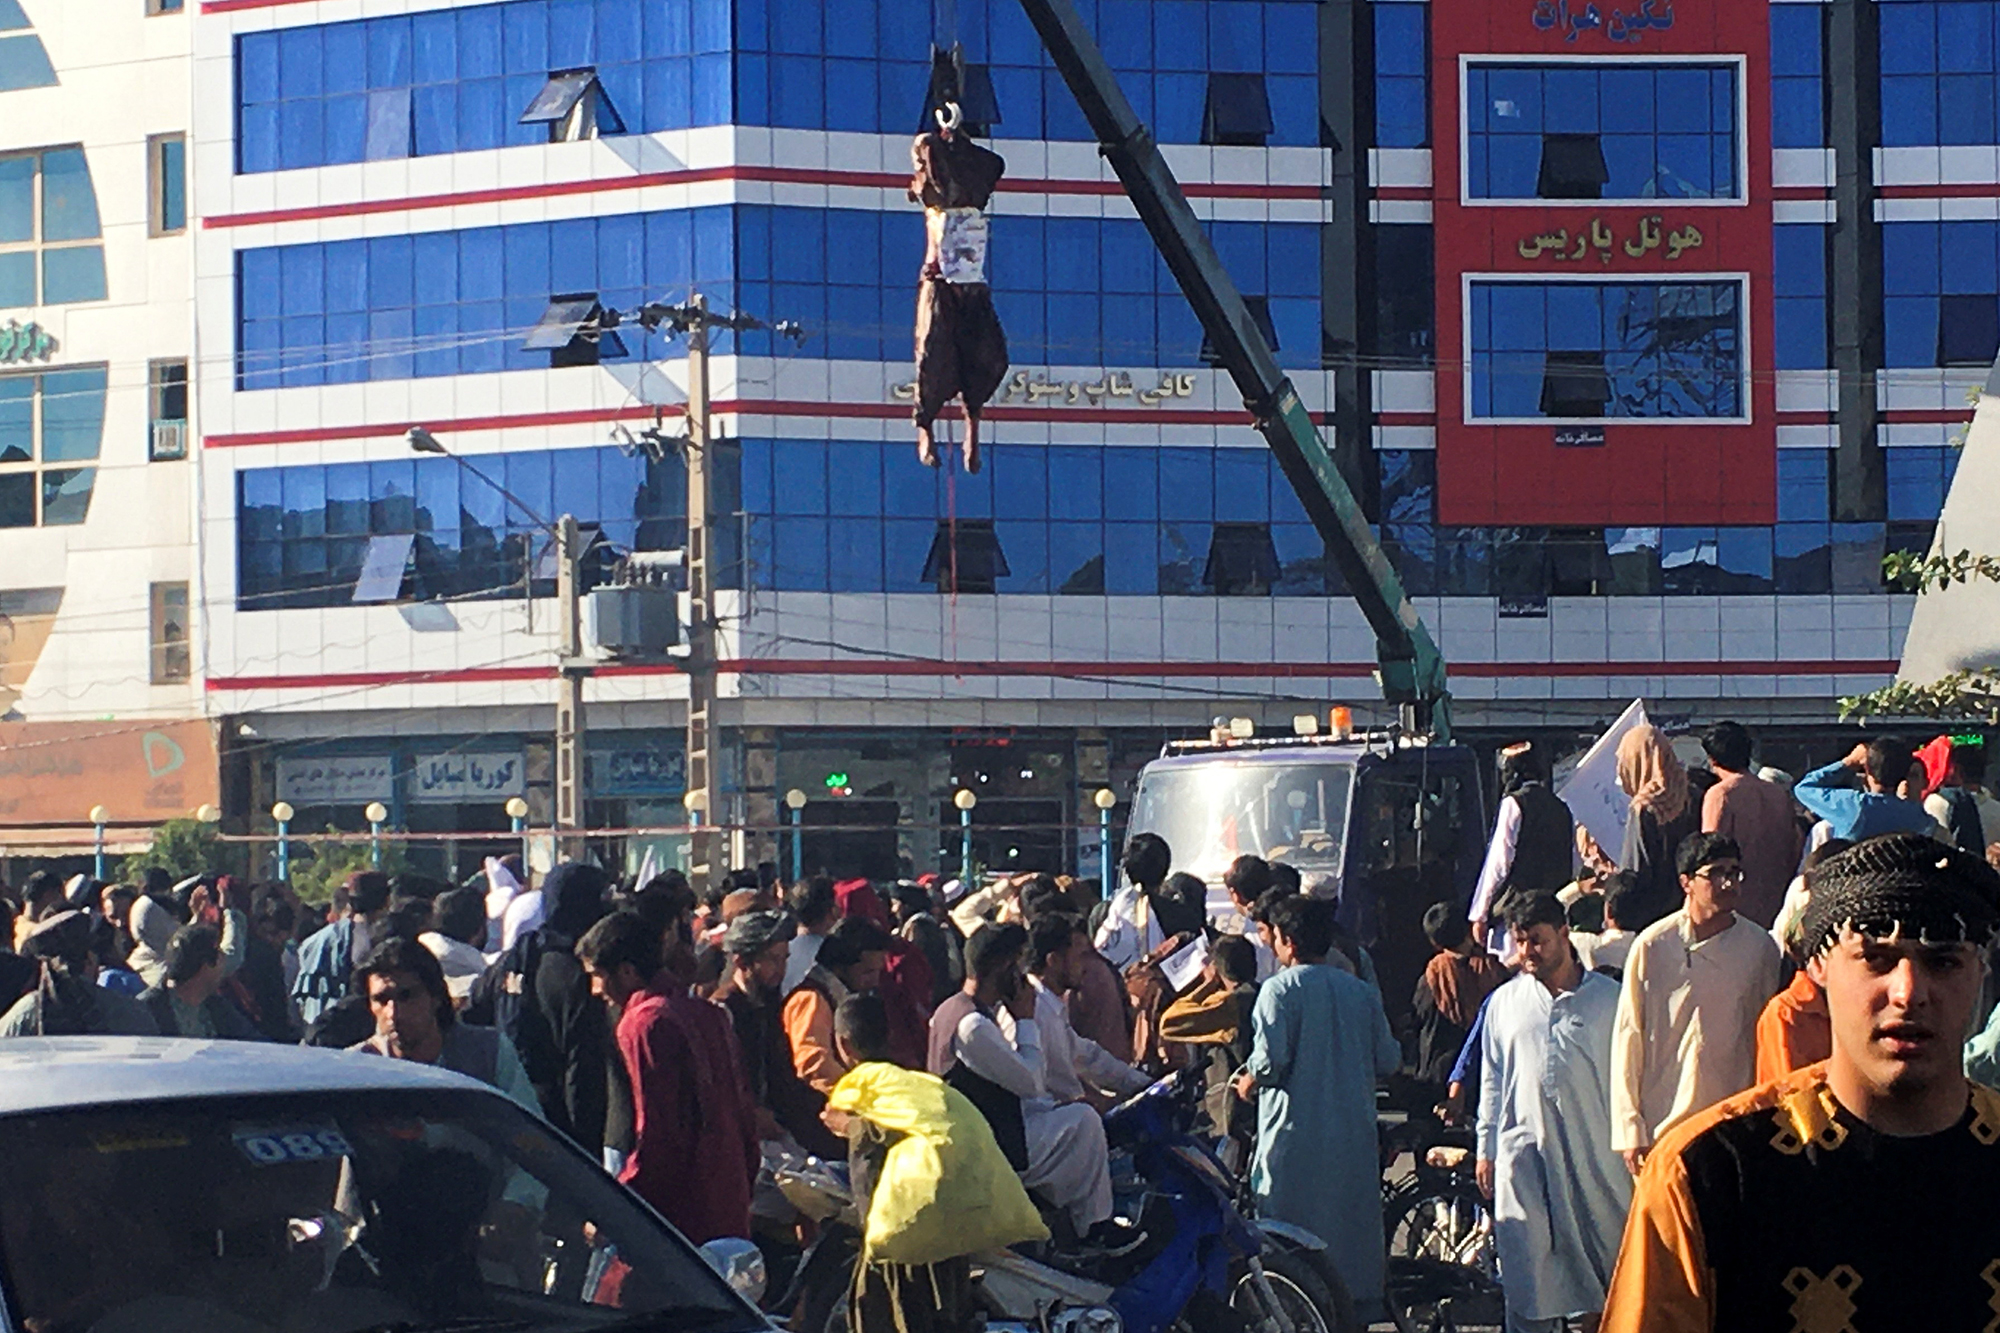 Crowds gather to witness a dead man hanged by the Taliban